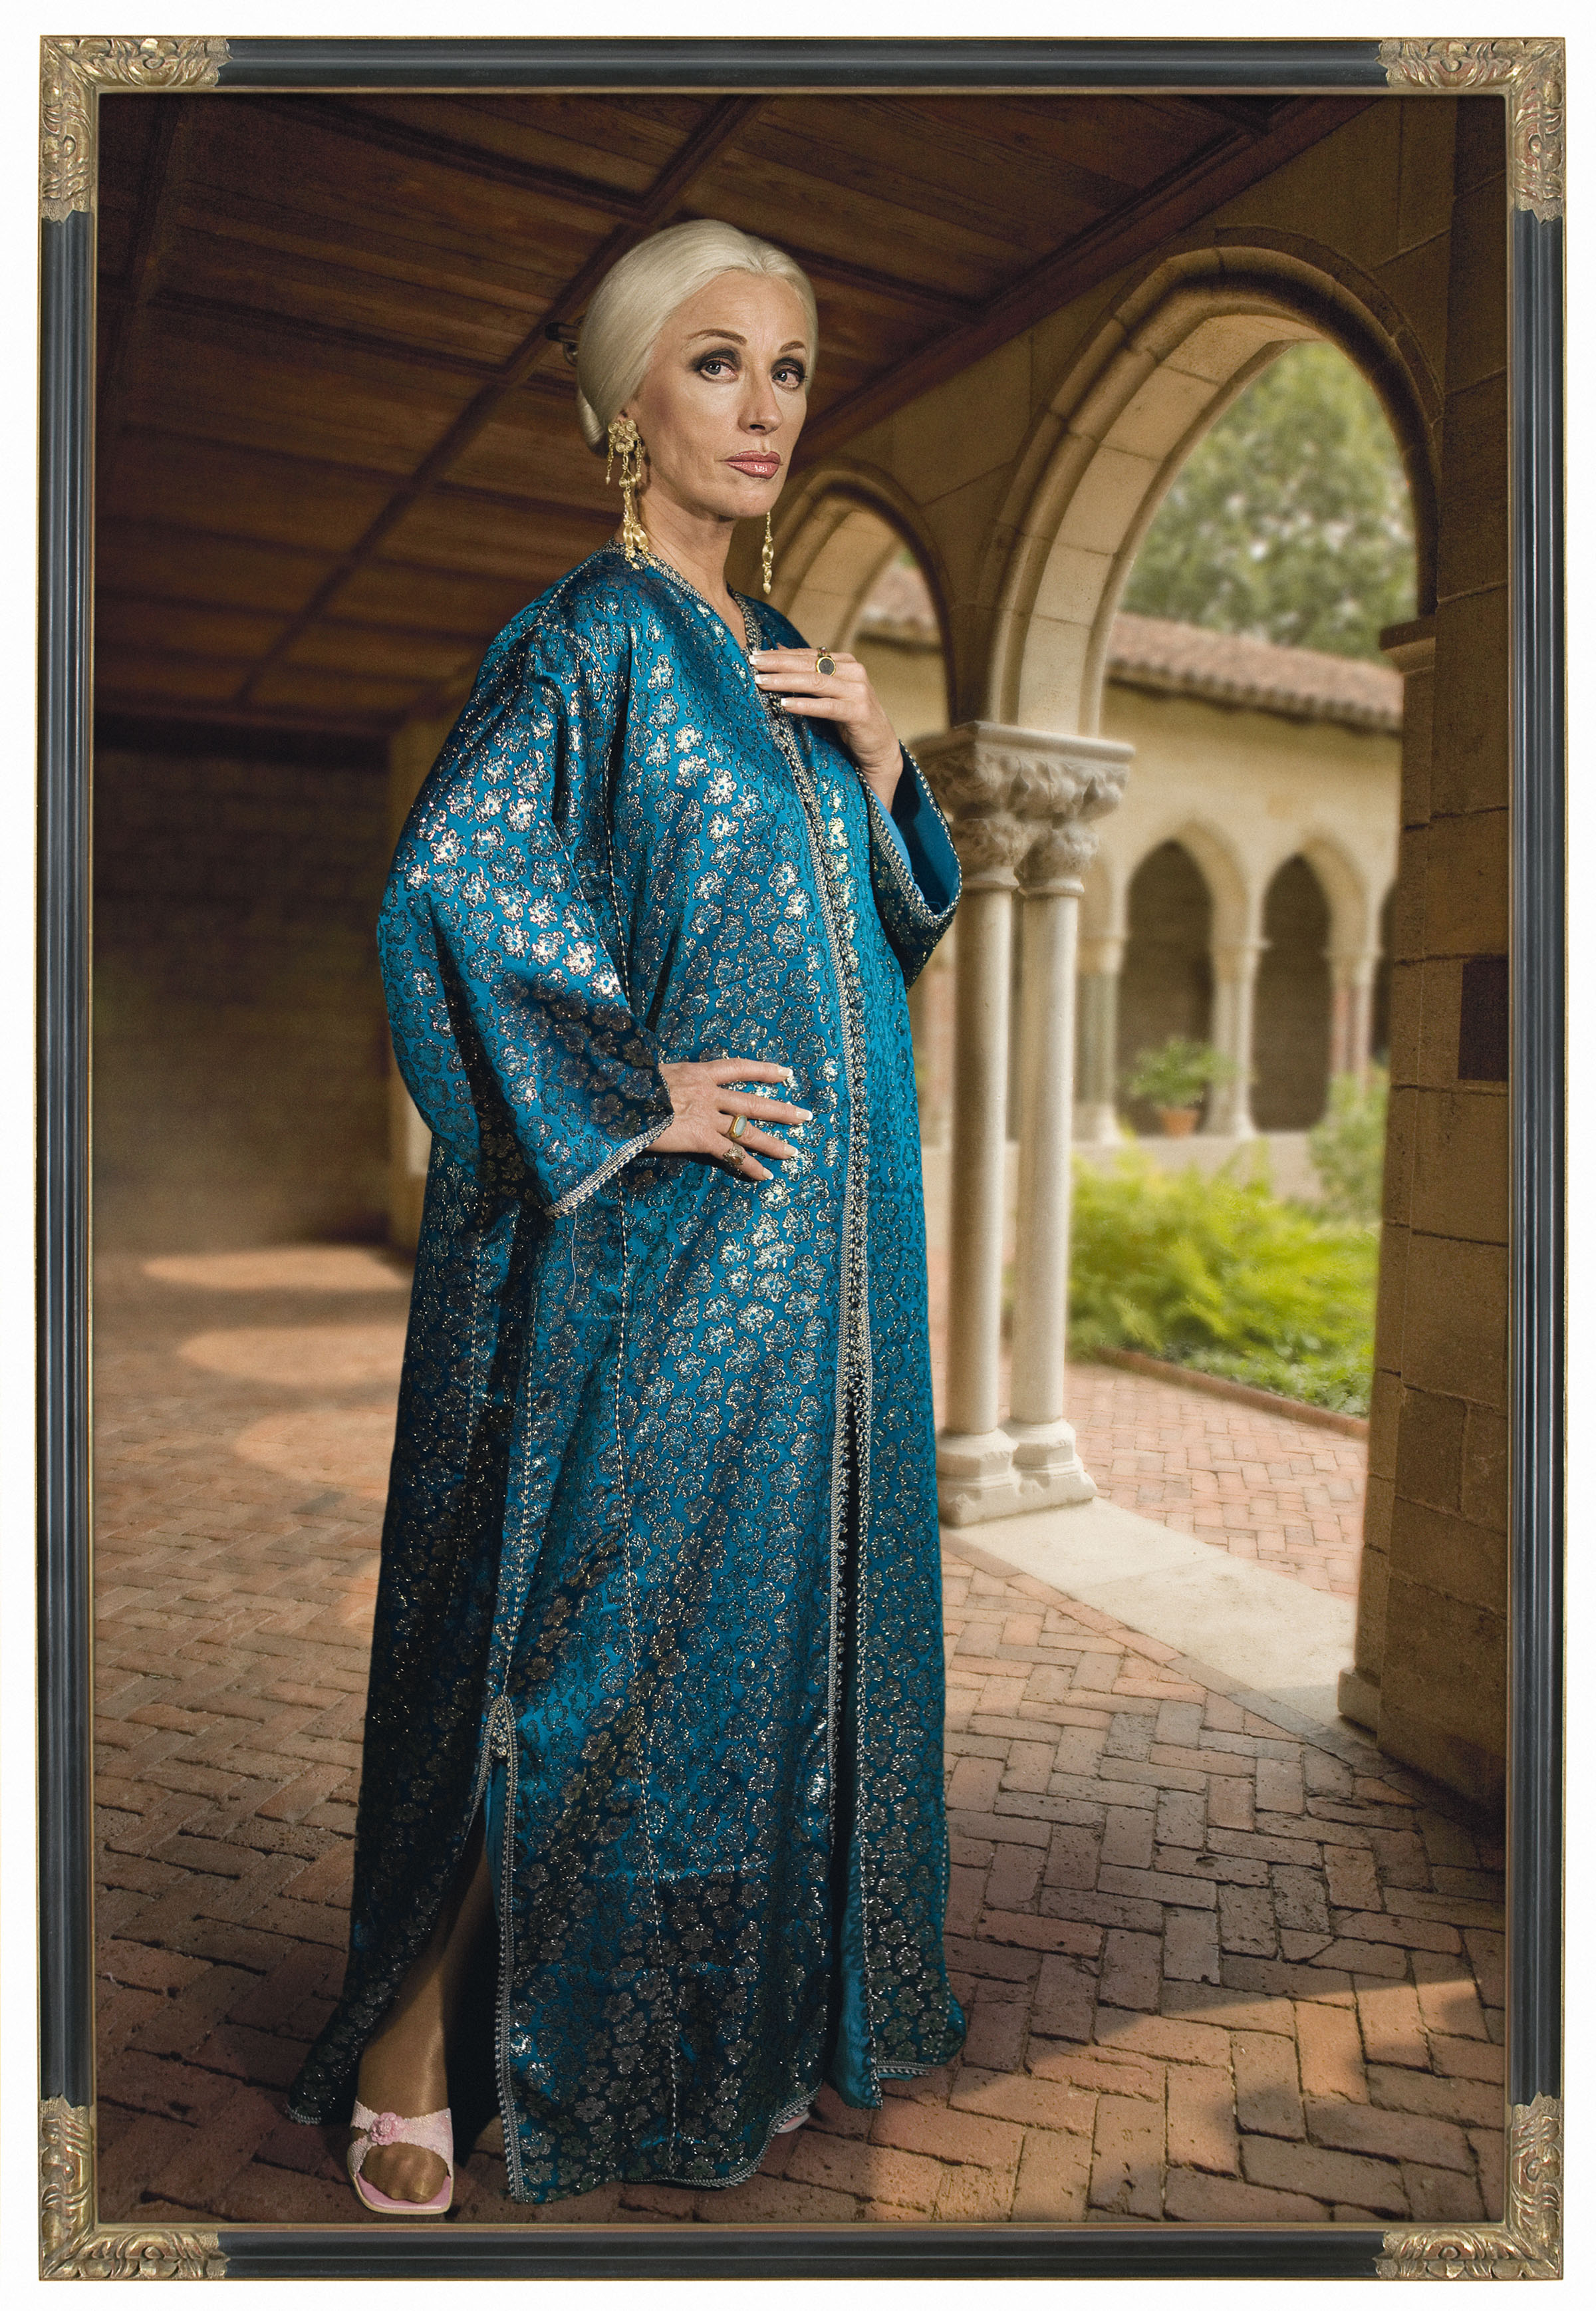 Untitled #466, Cindy Sherman. Courtesy of National Portrait Gallery